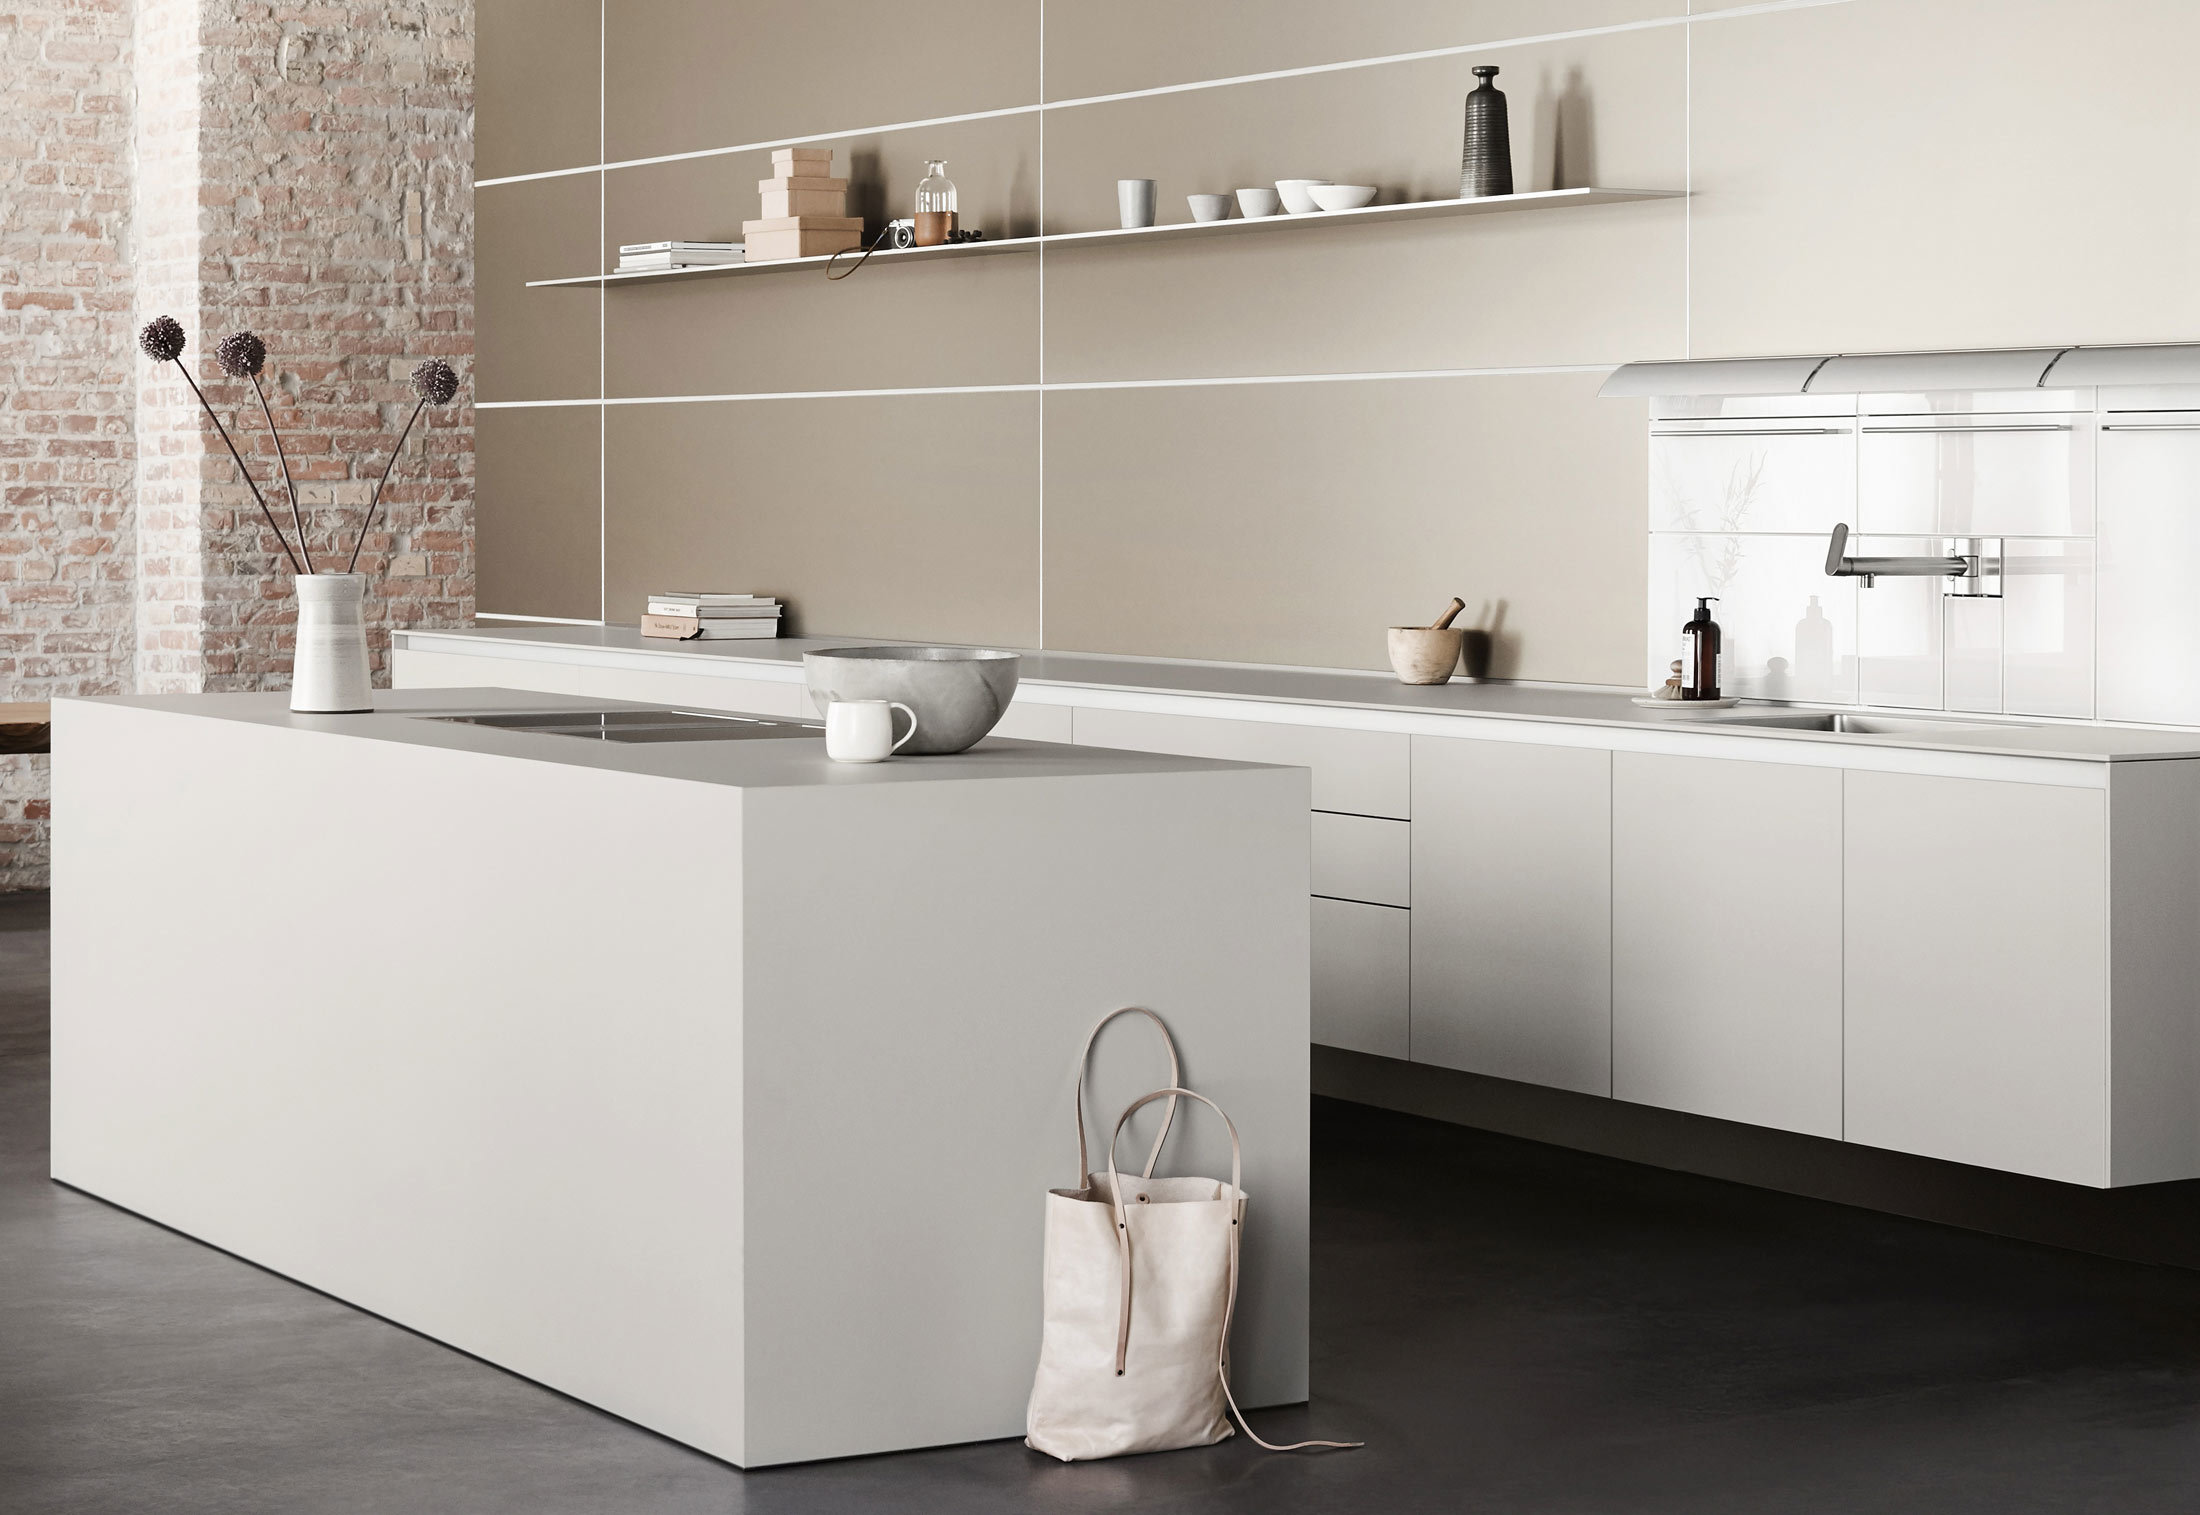 Bulthaup kitchens lebanon wow blog for Cucina wow